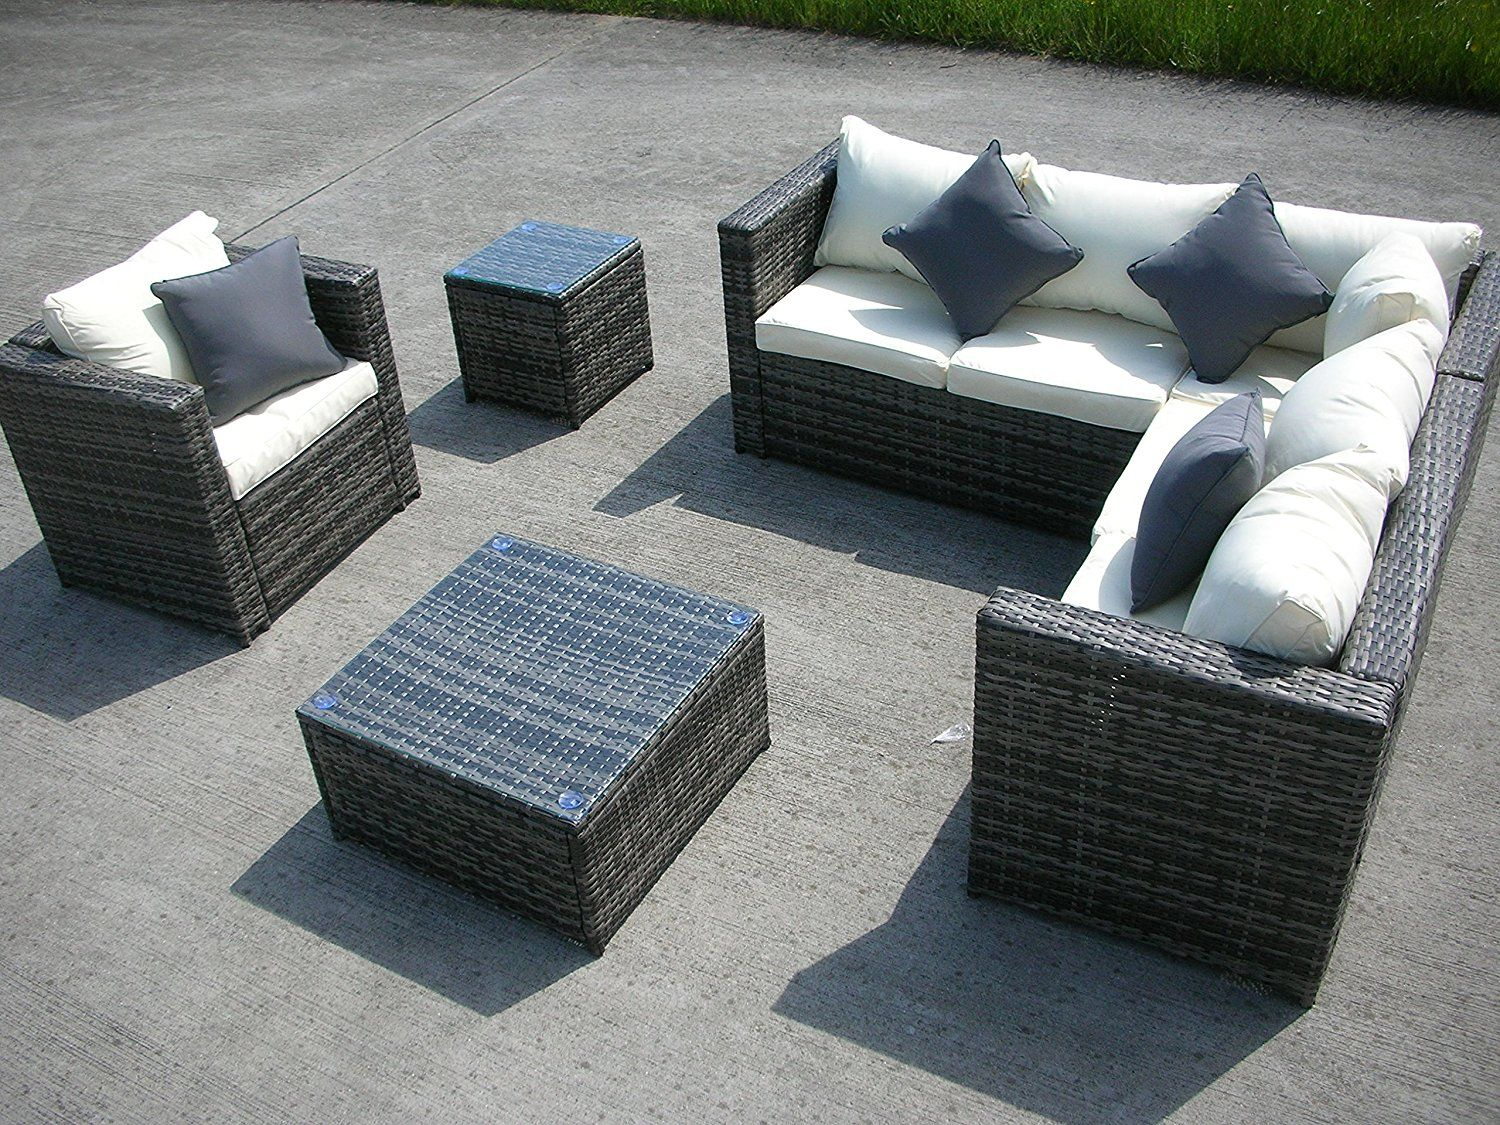 wicker sofa sets uk bed price in bangalore new grey rattan conservatory outdoor garden